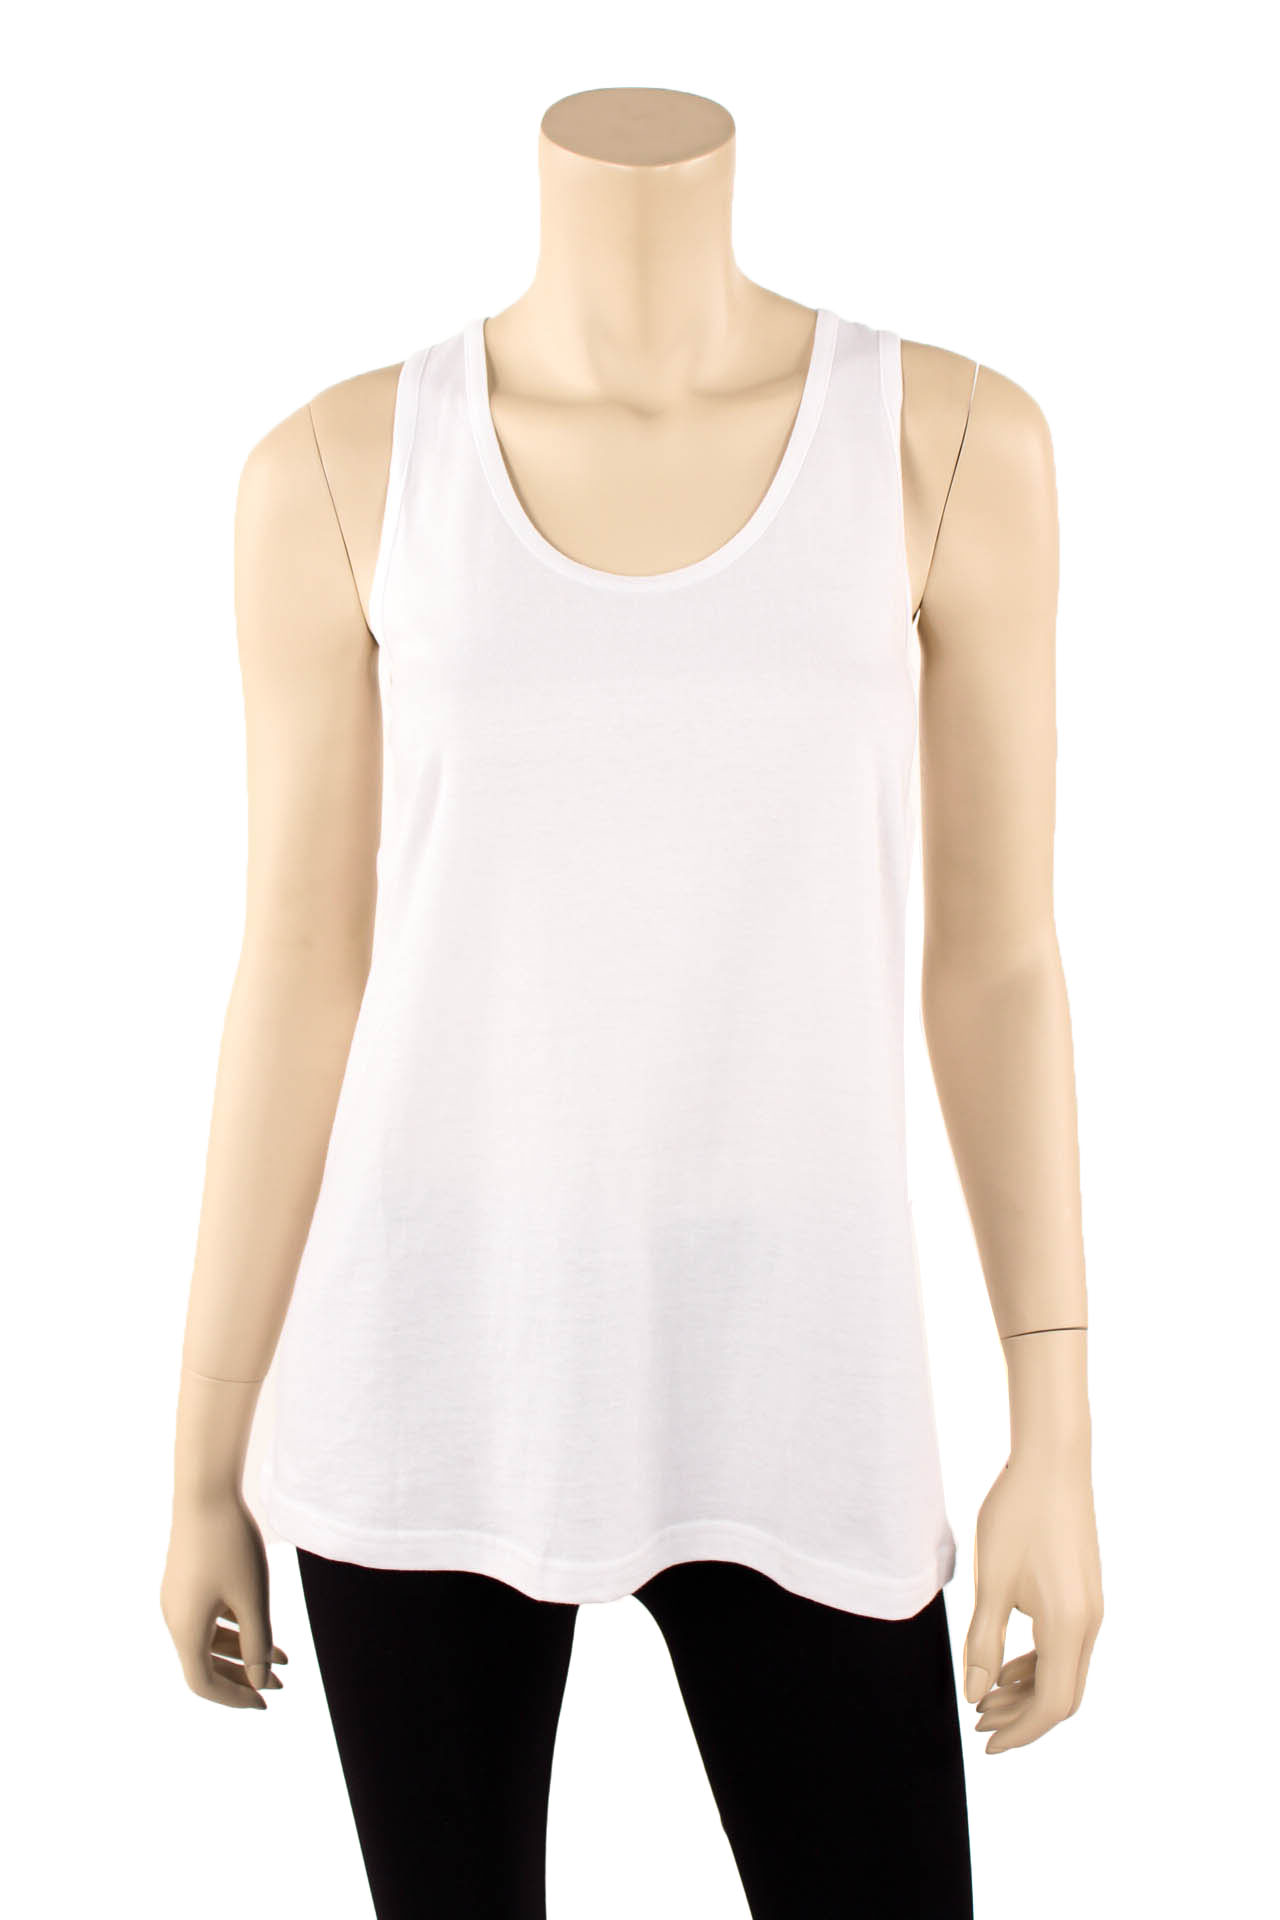 Womens Loose Fit Tank Top 100 Cotton Relaxed Flowy Basic ...